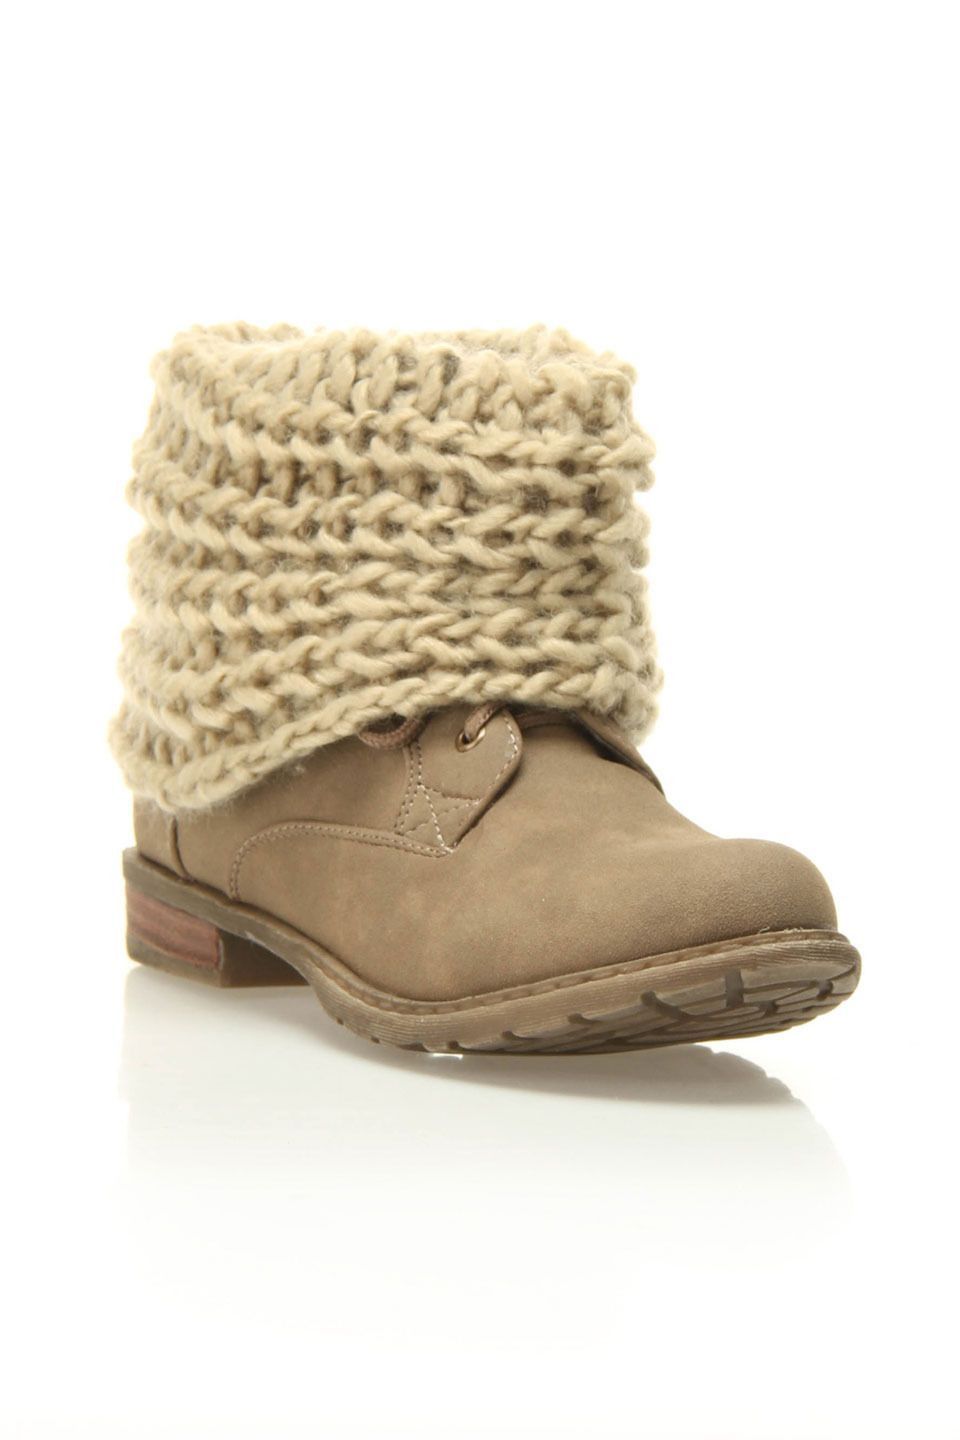 Knit inspiration- a simple knit tube to dress up my boots! Cute with ...